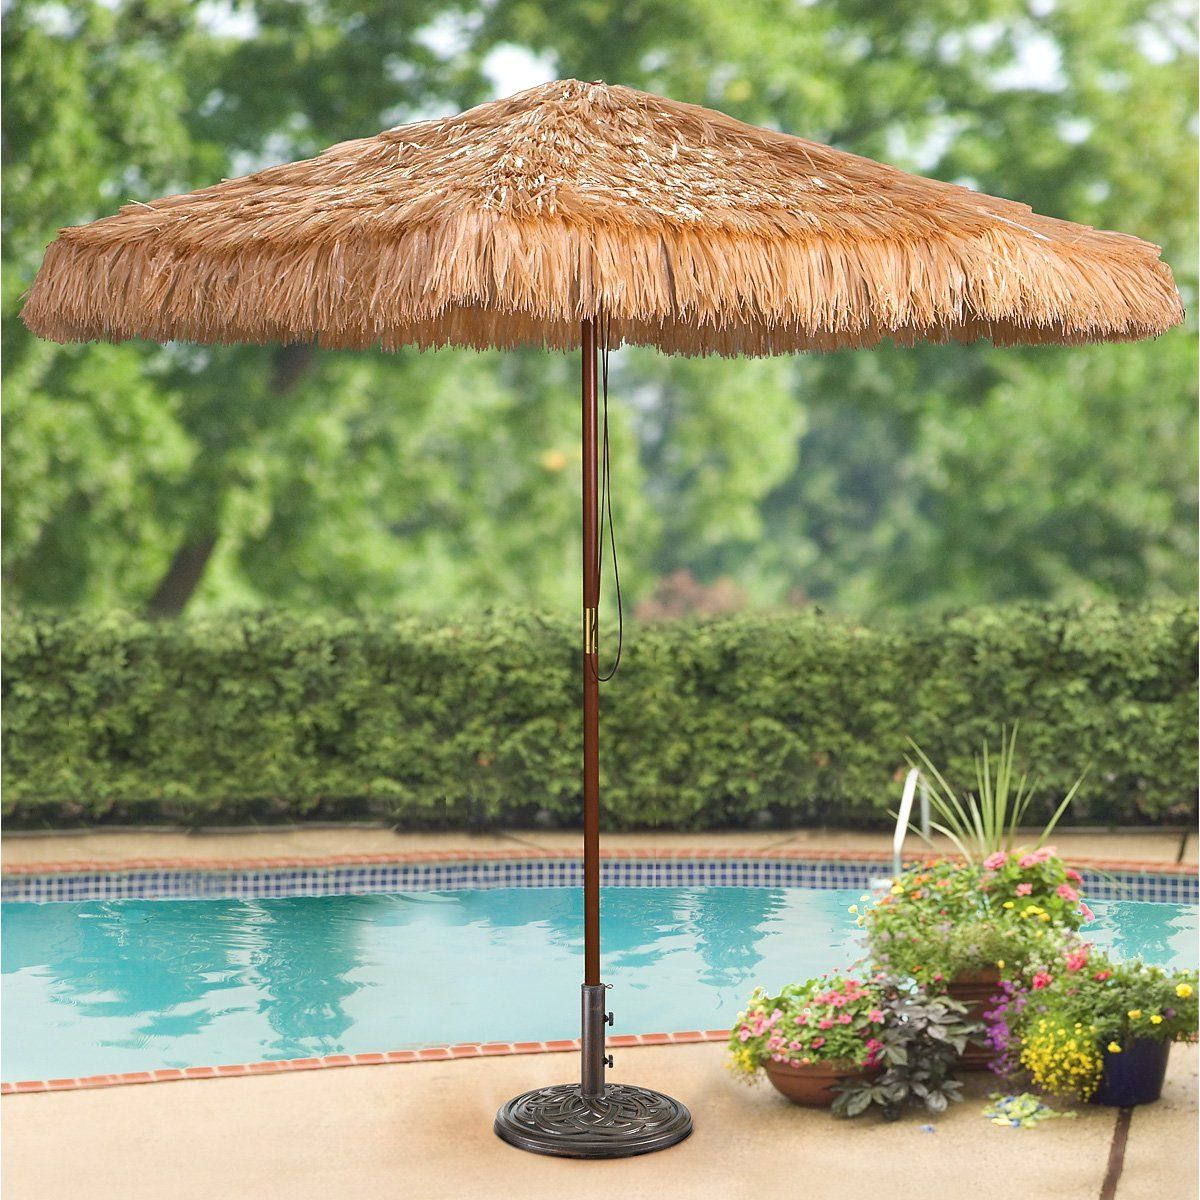 Best And Newest Amazon : Castlecreek 9 Foot Thatched Tiki Umbrella : Patio Inside Tropical Patio Umbrellas (View 3 of 20)